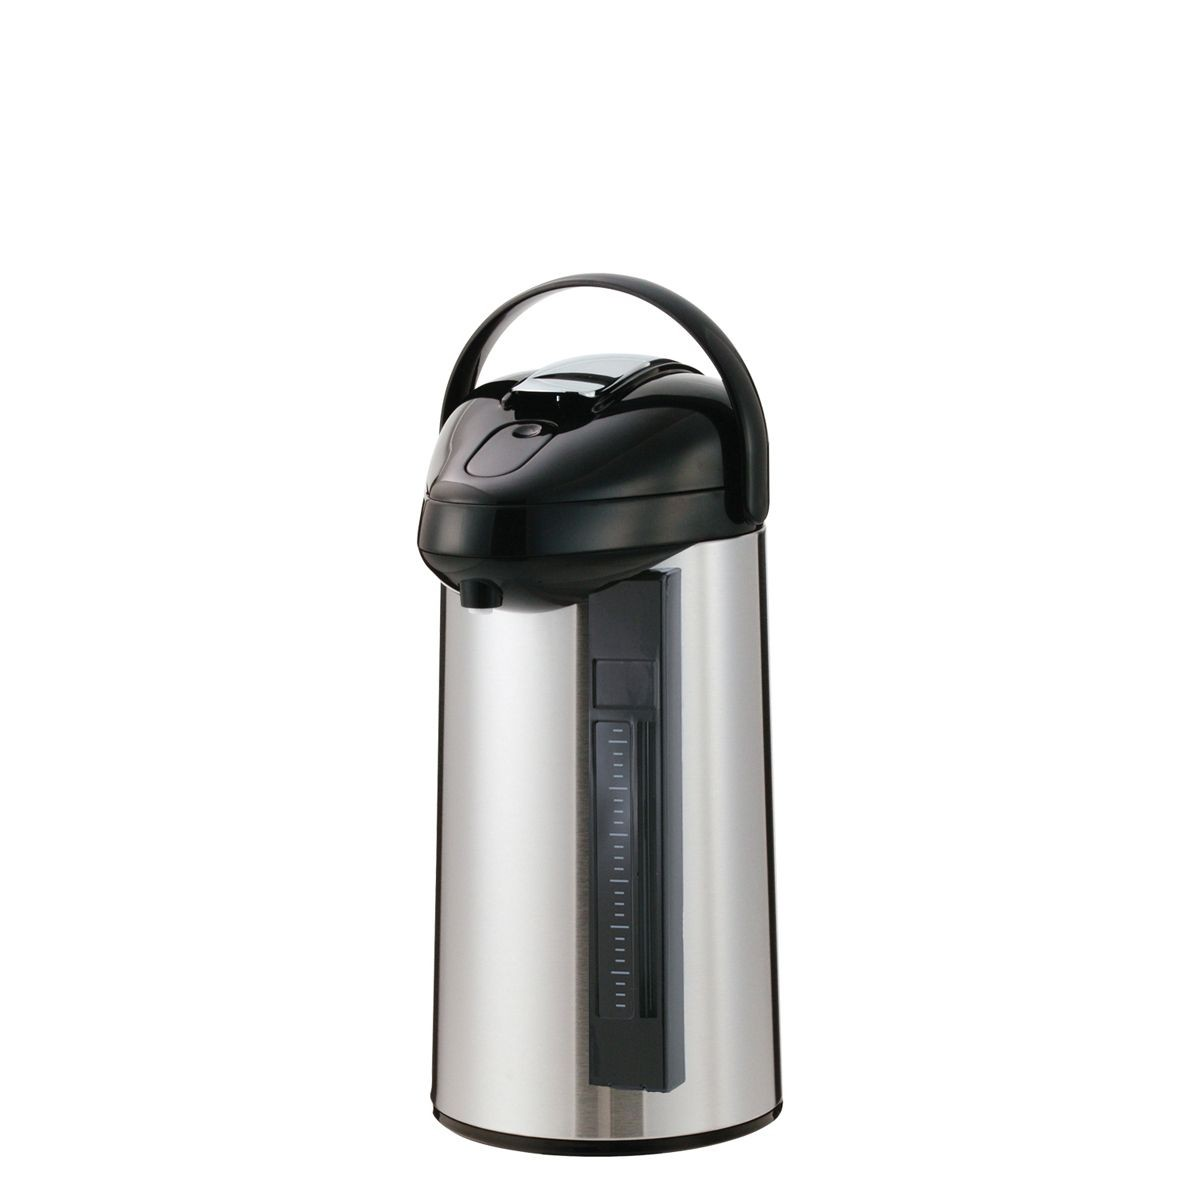 Service Ideas SSAL300SG Steelvac Airpot with Interchangeable Lever Lid, 3 Liter